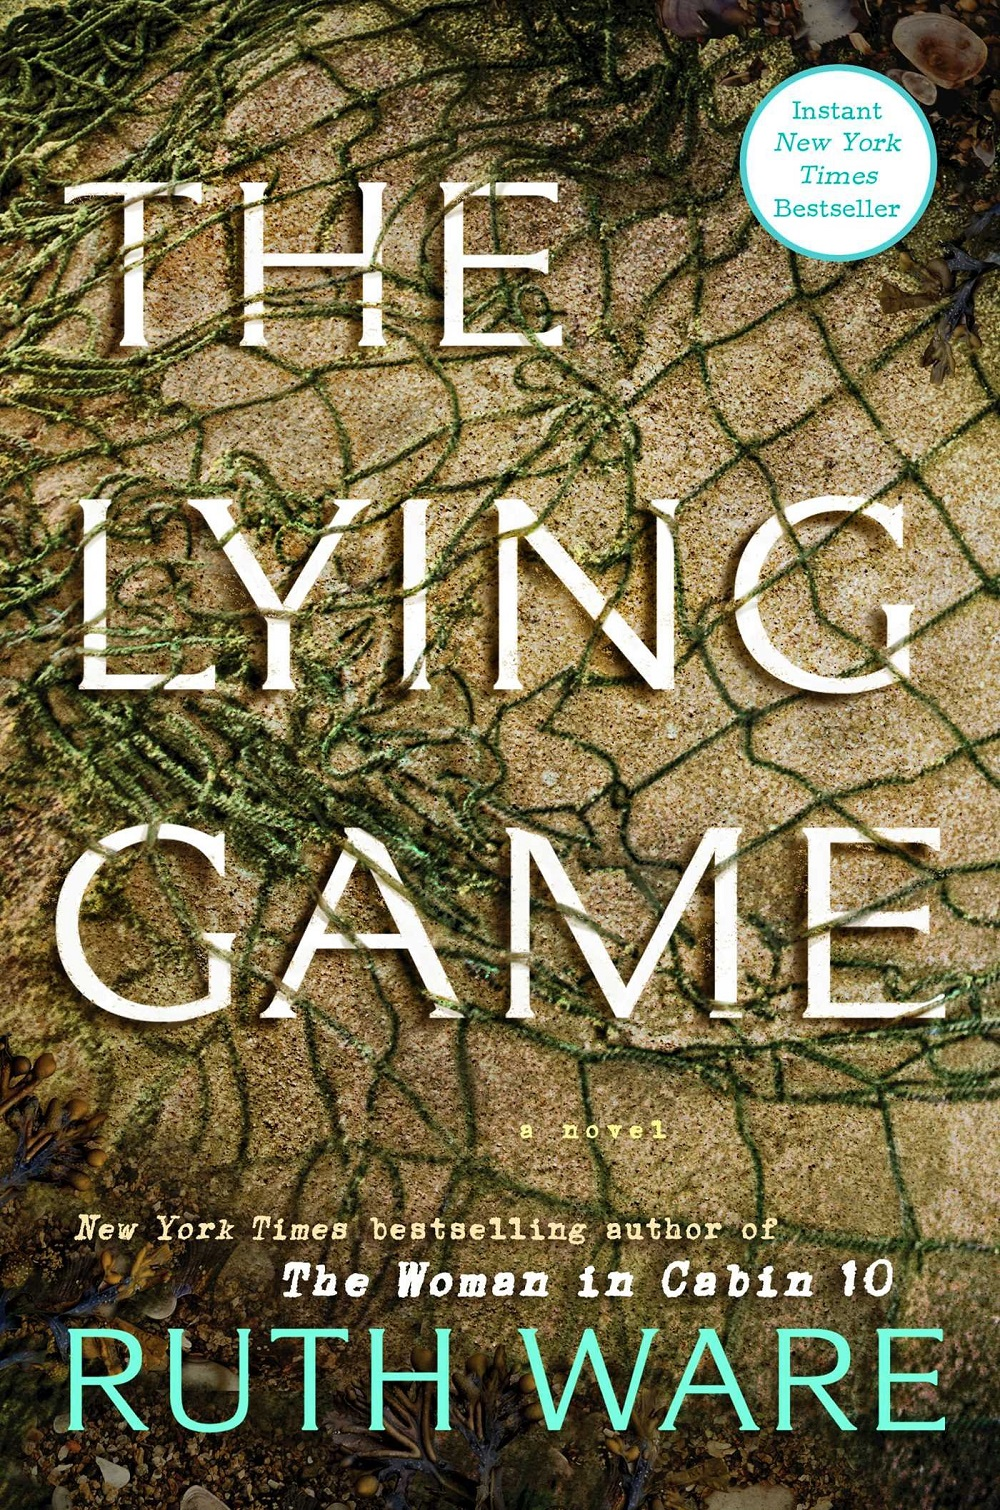 The Lying Game Ruth Ware jacket.jpg